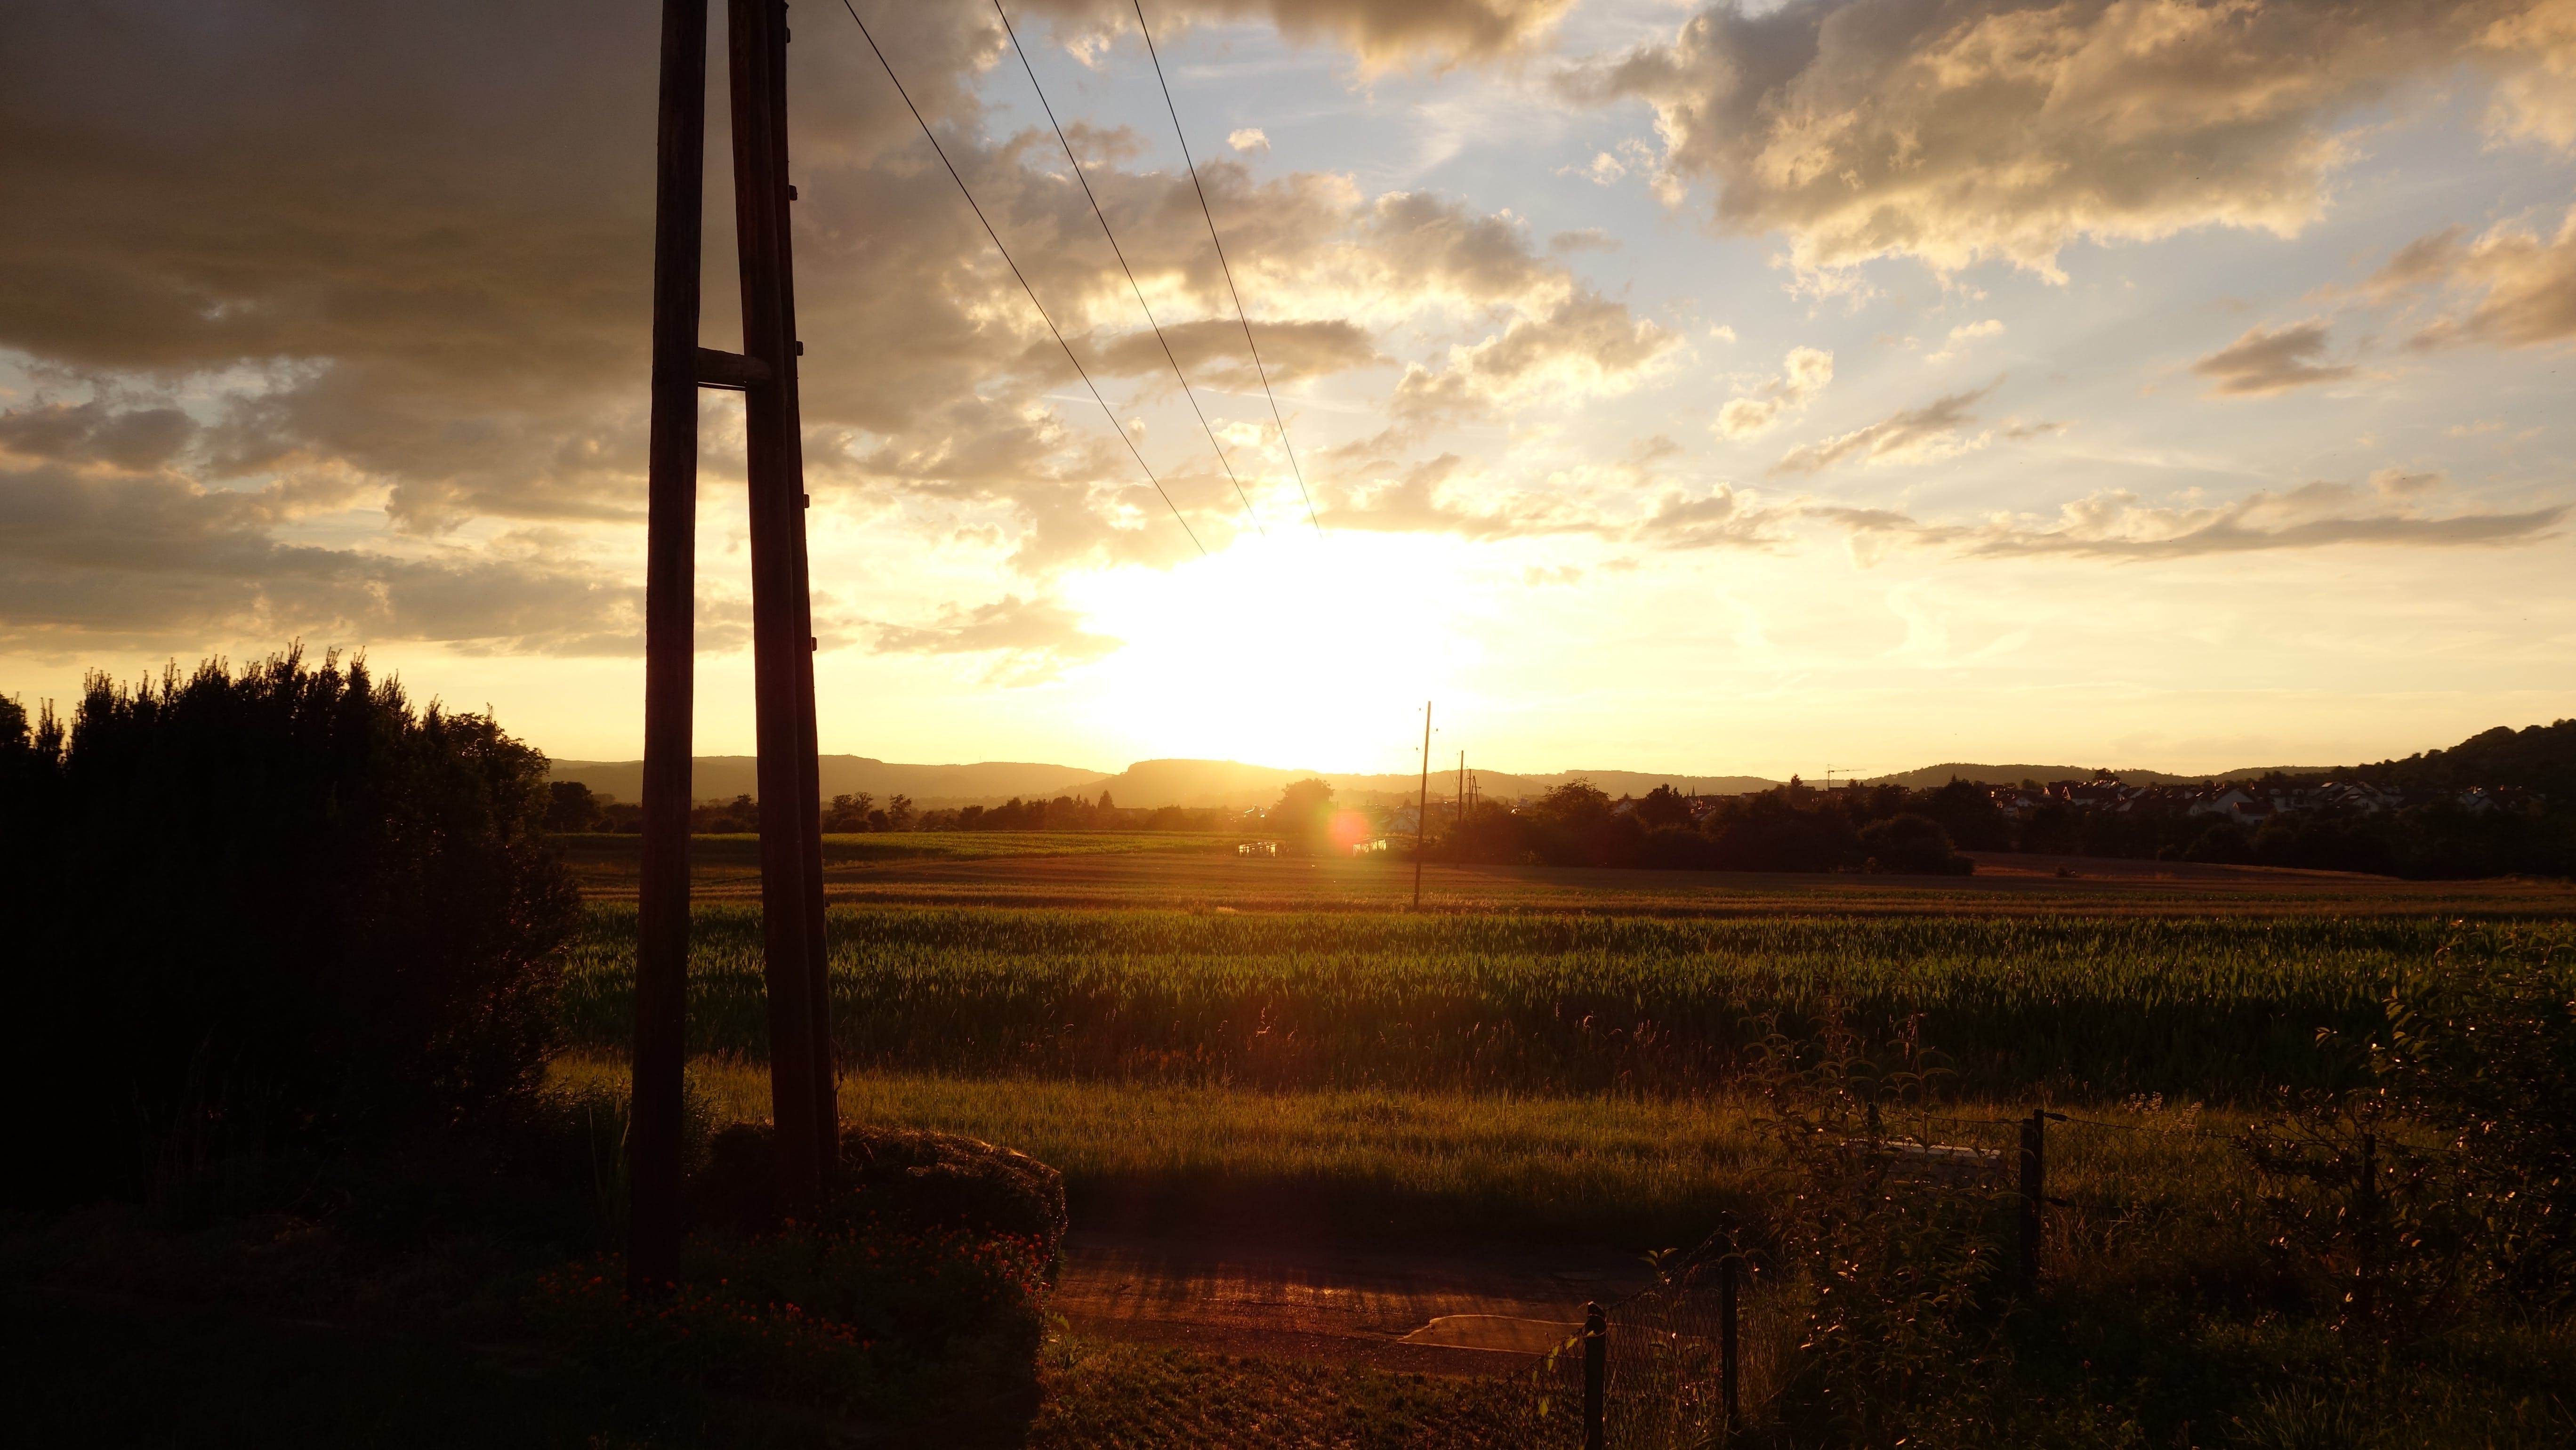 Green Field Landscape Photo during Sunrise